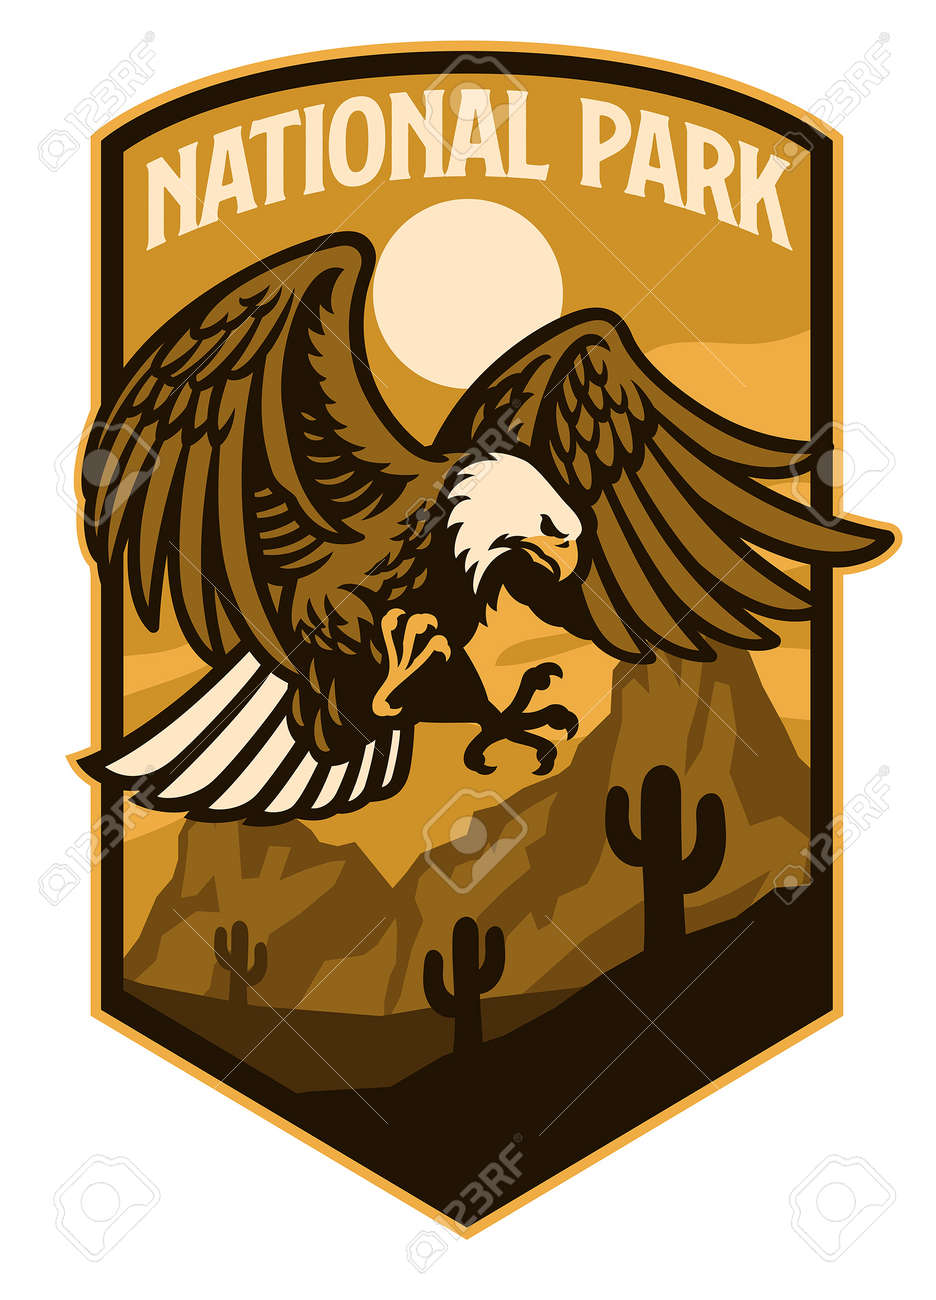 vector of bald eagle of national park style logo - 171104009